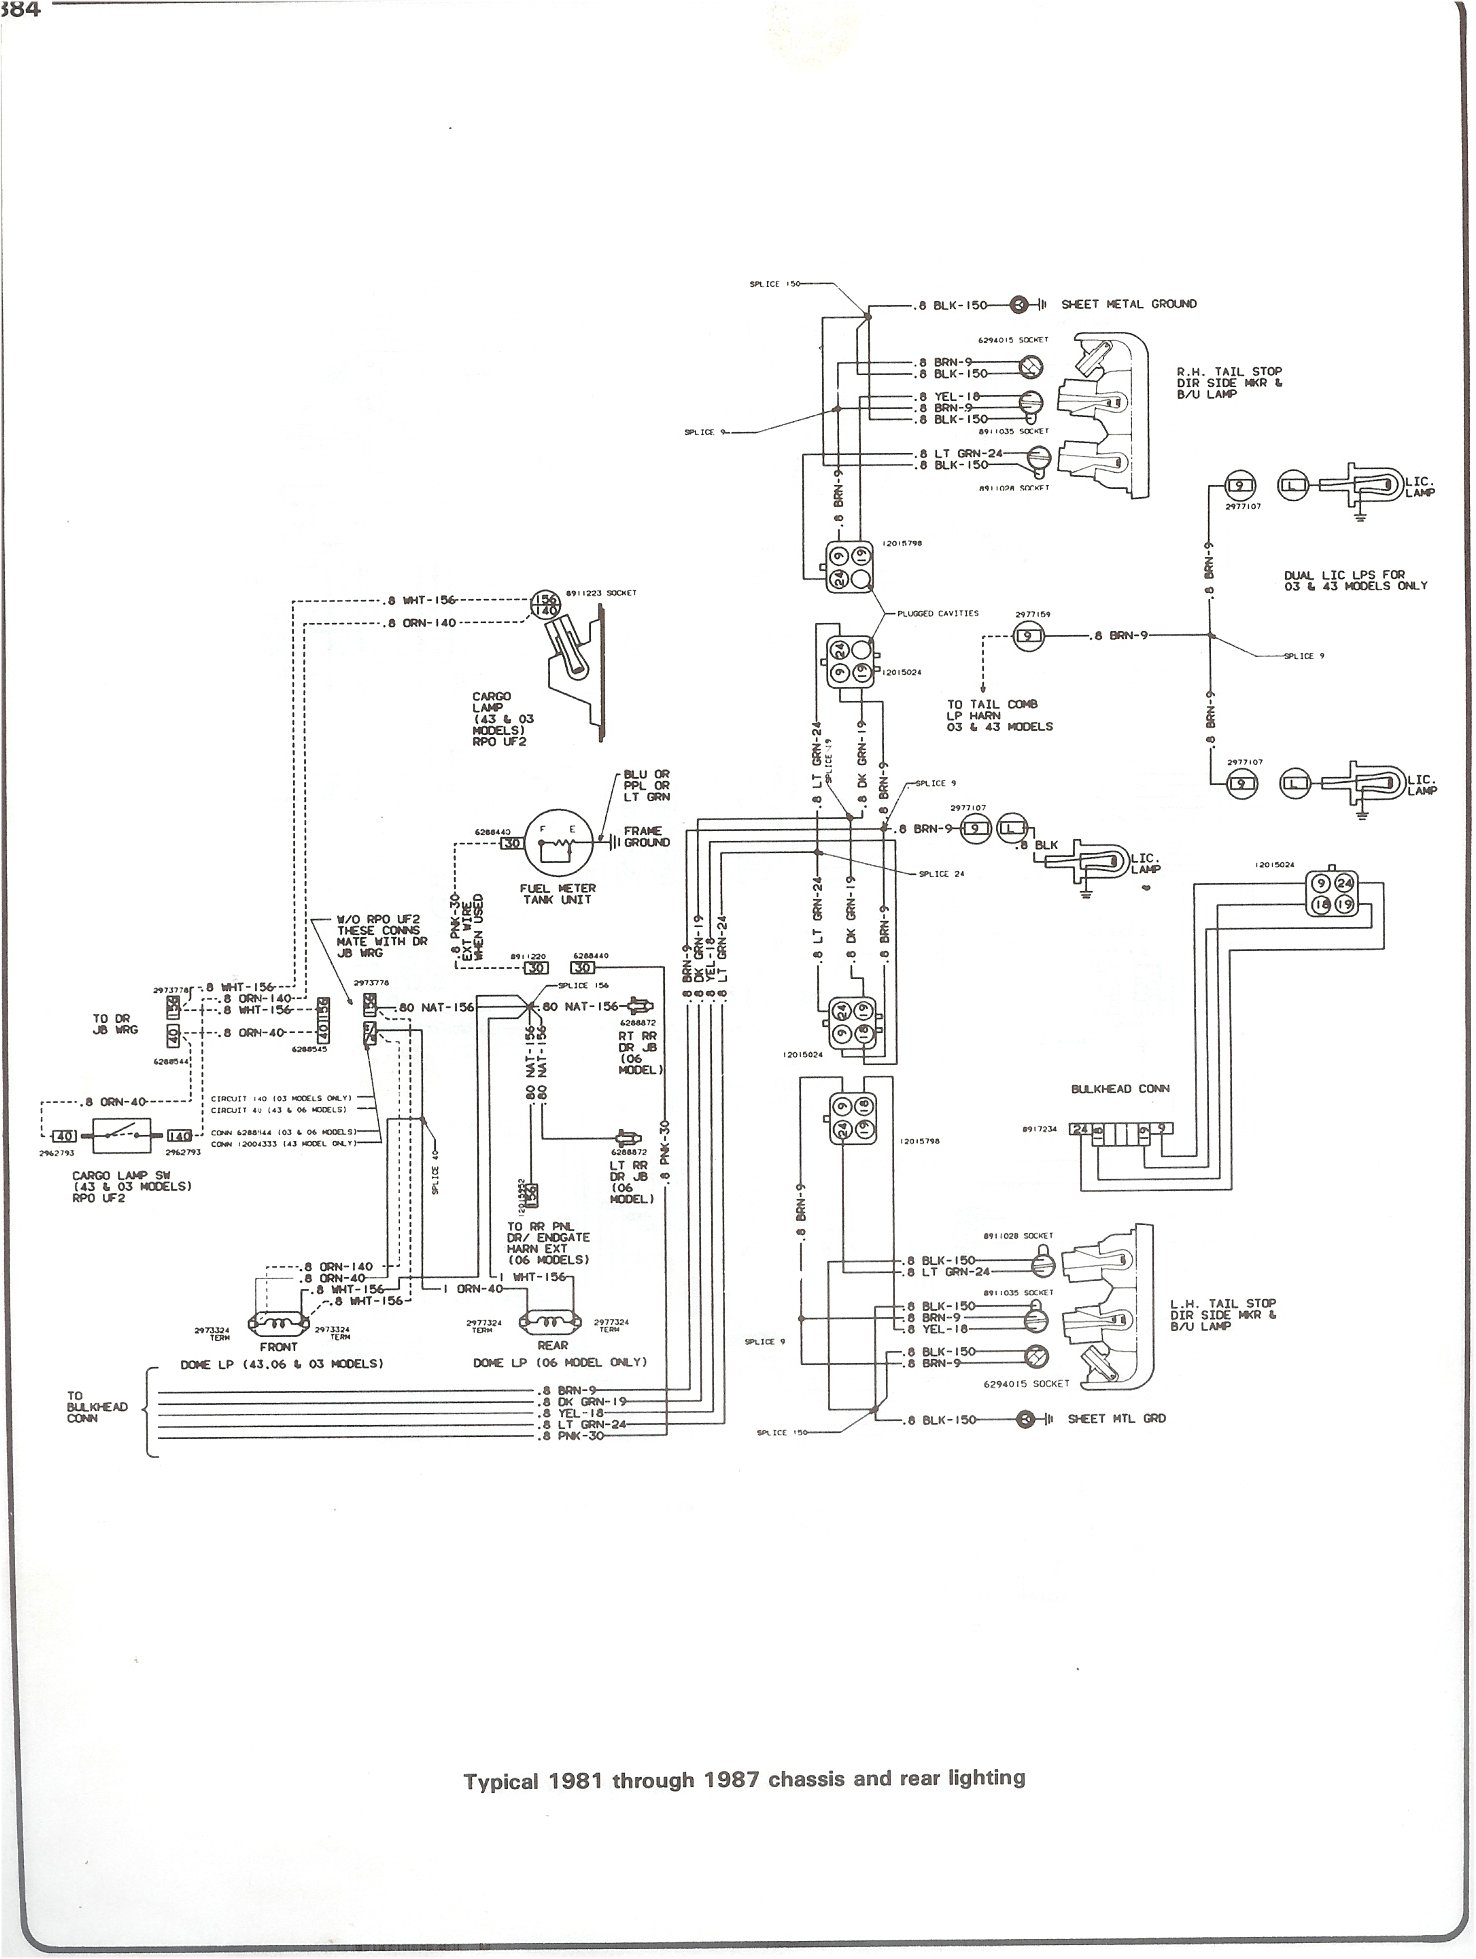 P 0900c15280054bc3 besides Ford Proportioning Valve Diagram GXkPRnmU50bHzlnr6hqe47GIUeZGj75vlA0oe2MZ5k0 likewise 3109982 additionally 99 F250 Radio Wiring Diagram besides 441184 Park Neutral Safety Switch. on 1998 ford taurus